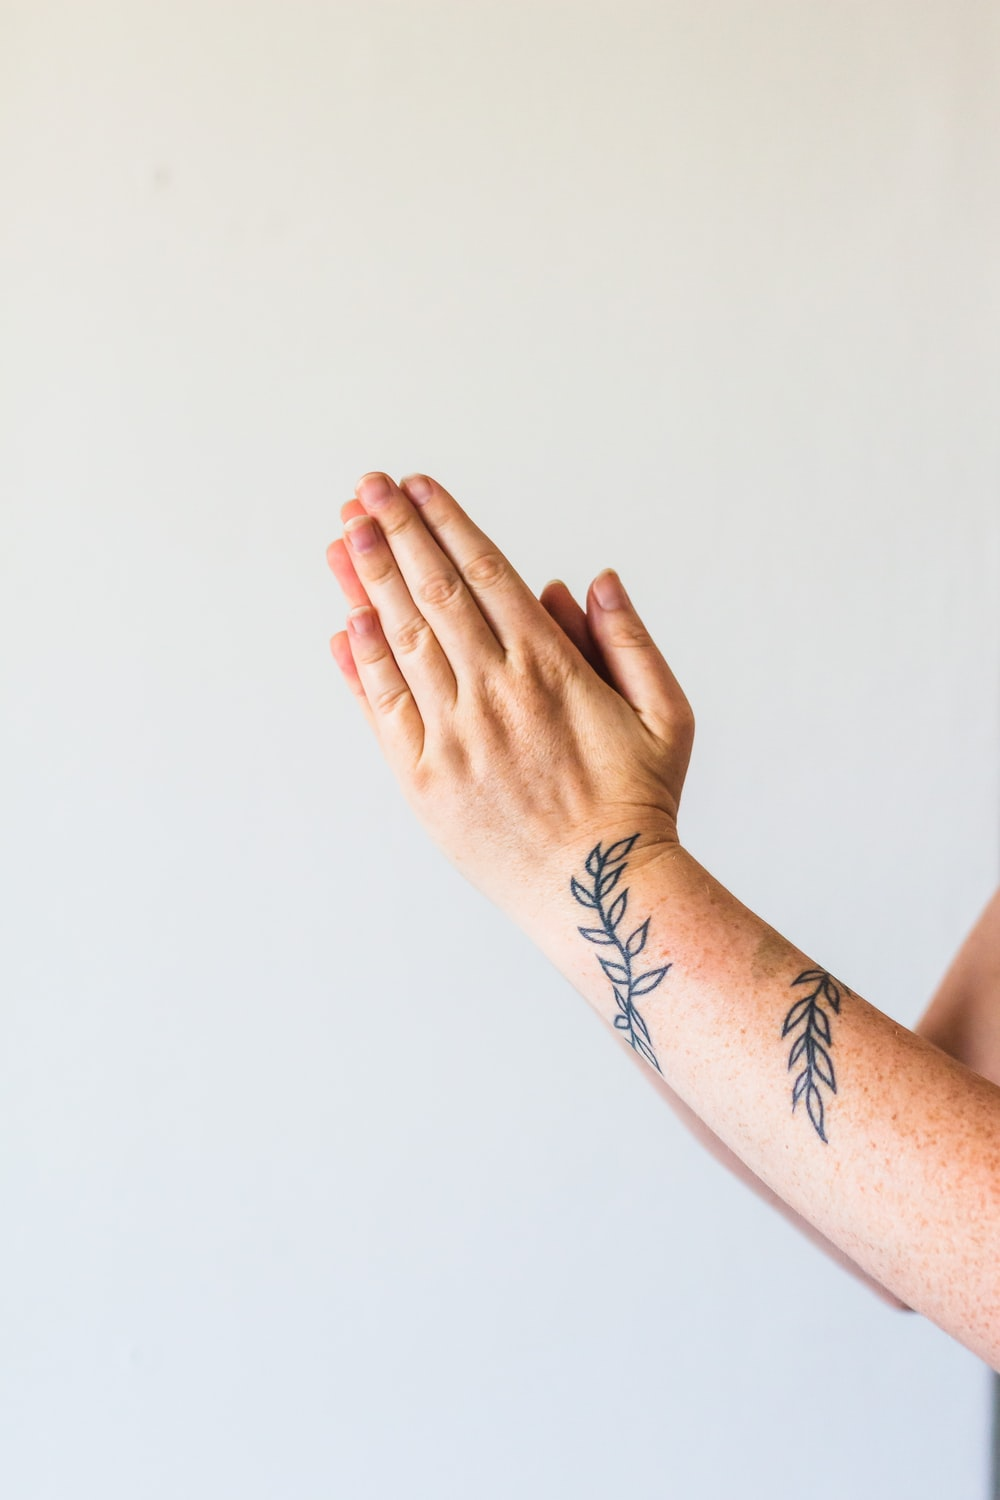 person with black tattoo on left hand